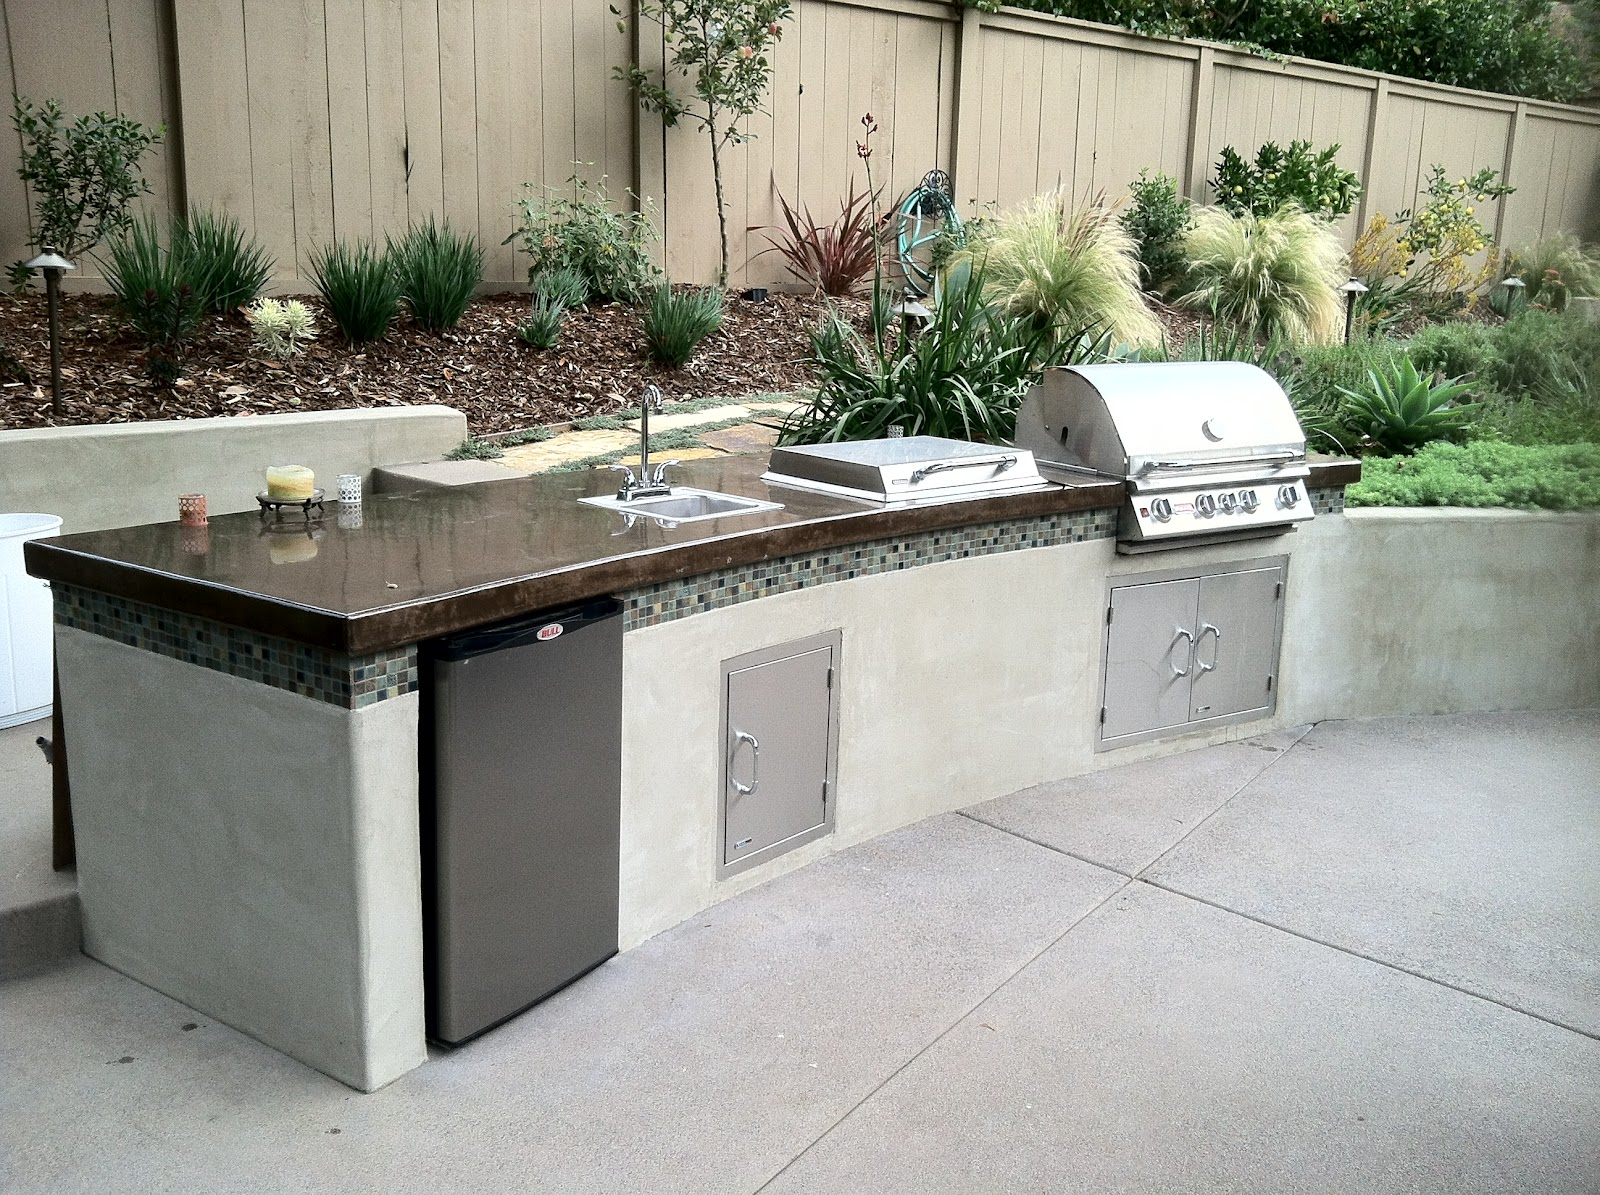 bbq island redo on pinterest bbq island concrete countertops and outdoor kitchens on outdoor kitchen bbq id=93620